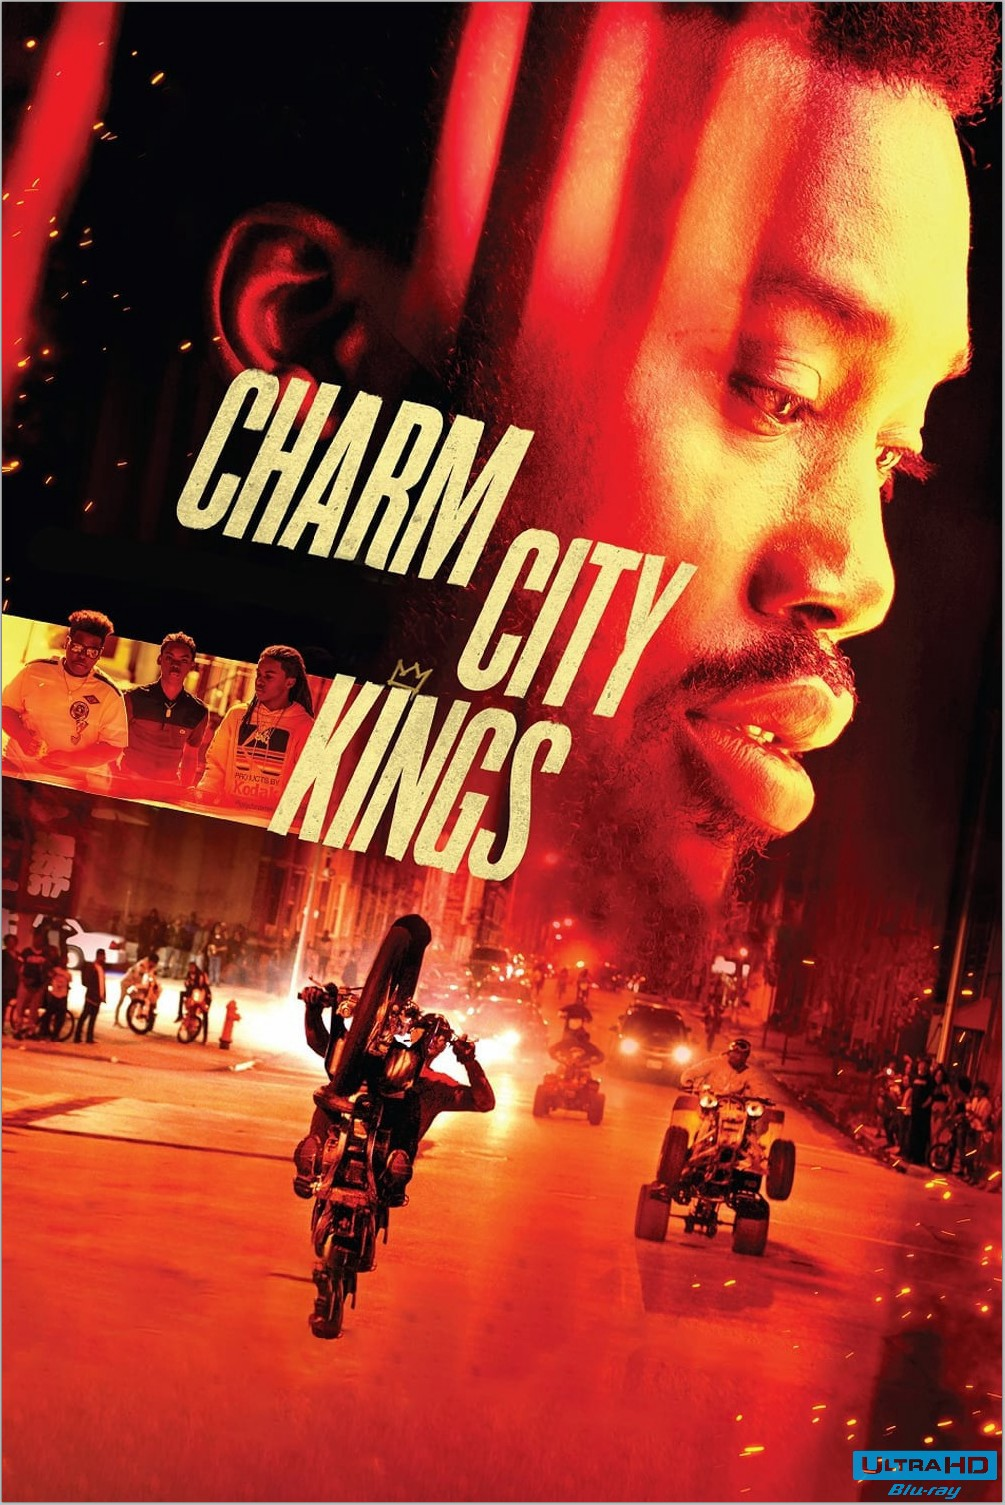 Charm City Kings 2020 Fullmovie Free Hd Download By Bernardclark Moviesbox Streaming Medium